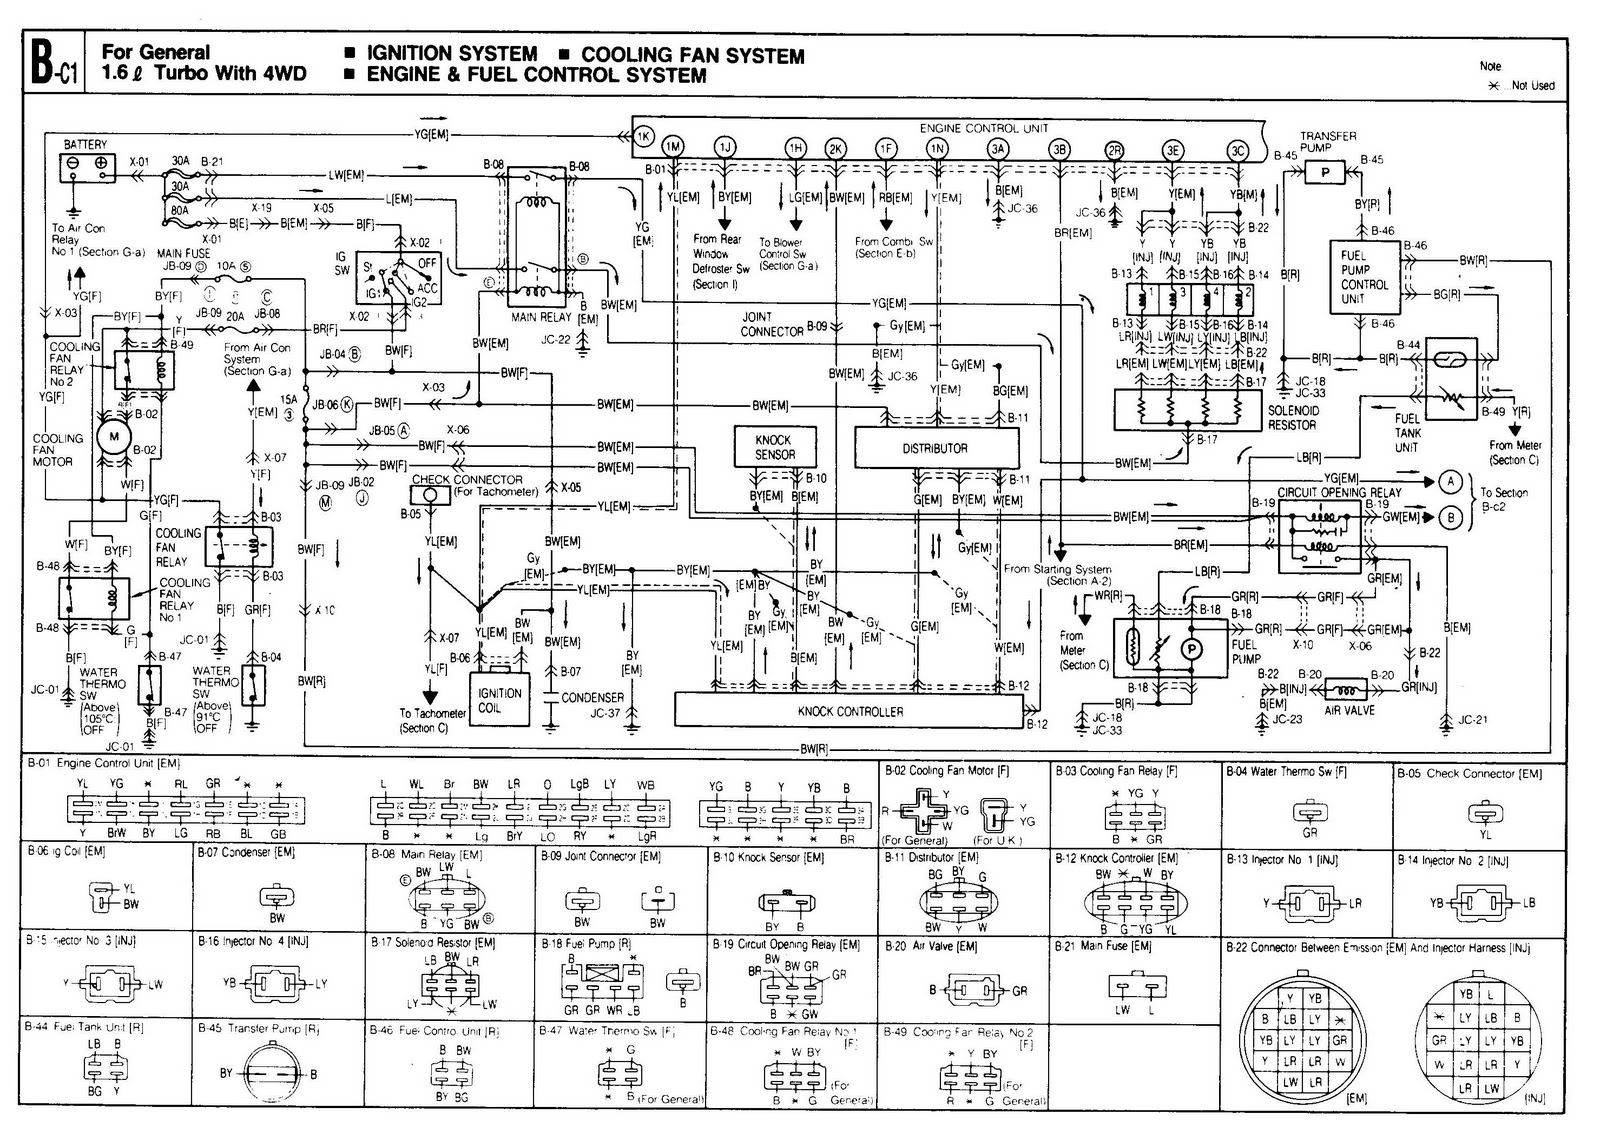 2004 mazda 6 wiring diagram free download mazda's garage: b6t manual servis